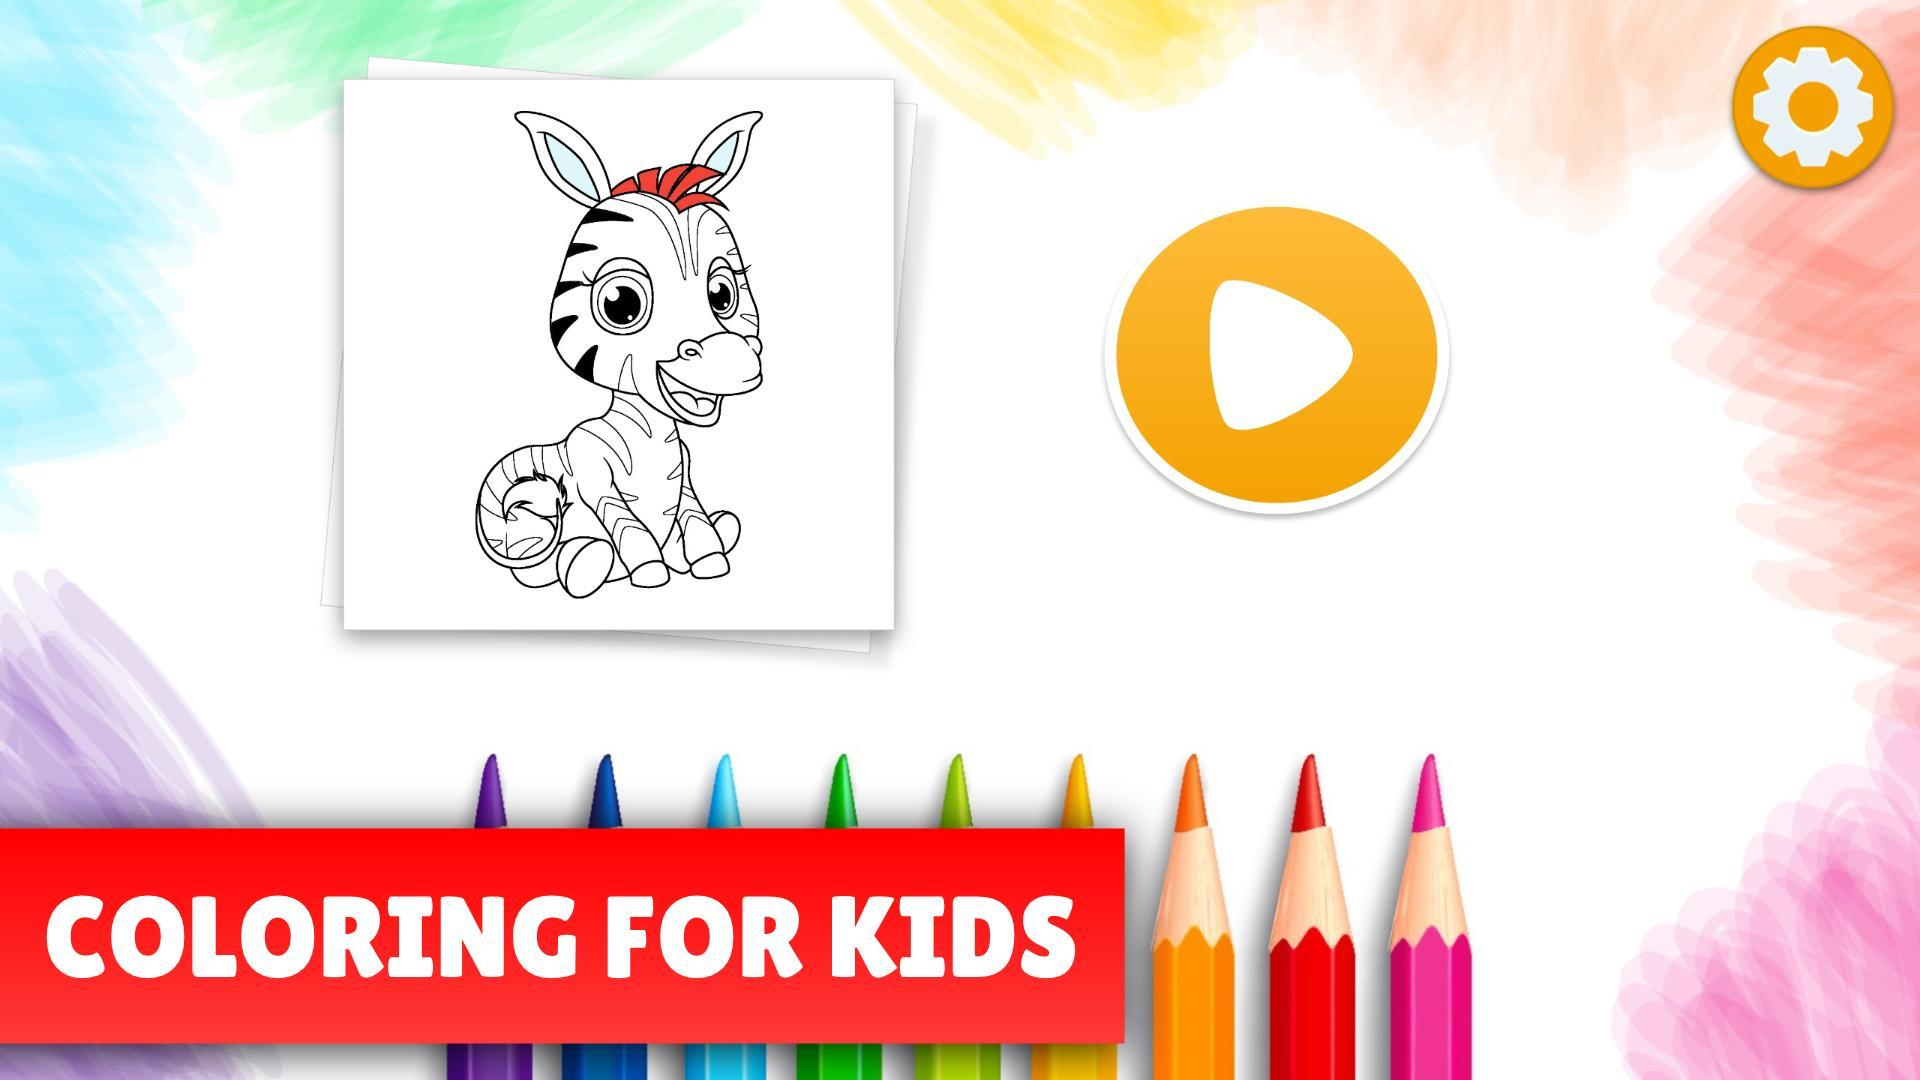 Kids coloring pages - Free drawing game 🐴🦄🎨 for Android - APK ...